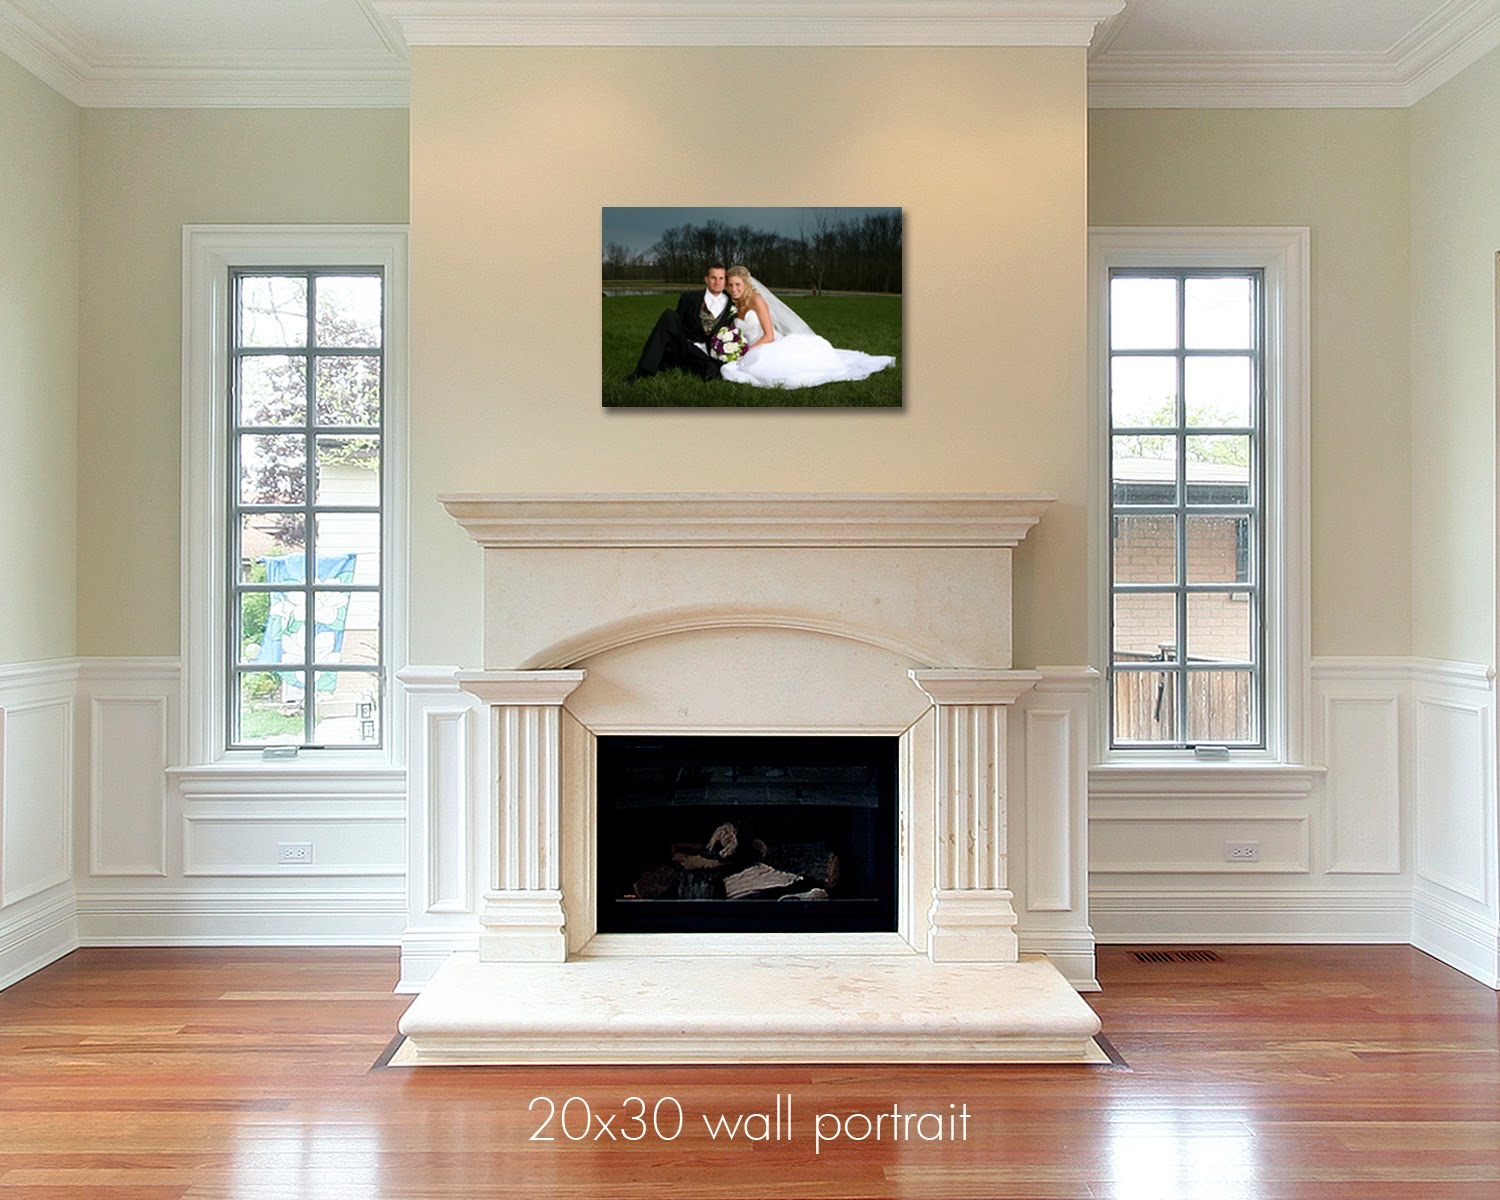 Larissa Photography Wall Portrait Samples For Amber - Rahmen 20x30